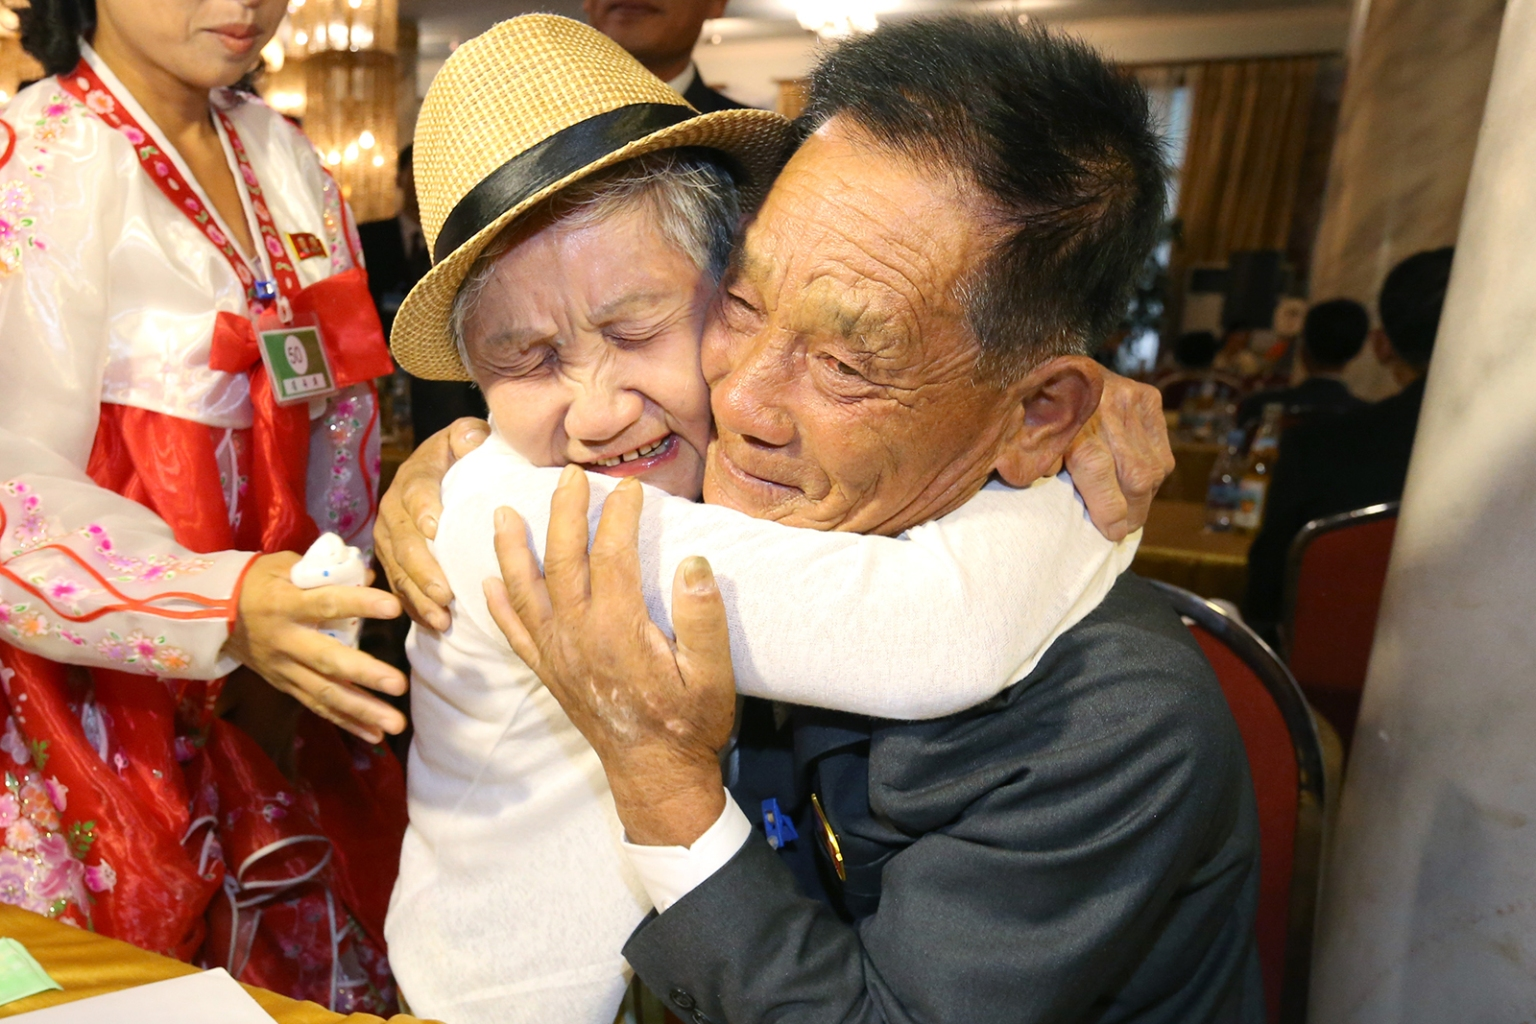 South Korean Lee Keum-seom, 92, embraces her North Korean son Ri Sung Chol, 71, at the Mount Kumgang resort on the North's southeastern coast on Aug. 20. Dozens of elderly South Koreans met their northern relatives for the first time since the peninsula and their families were divided by war nearly seven decades ago. KOREA POOL/AFP/GETTY IMAGES